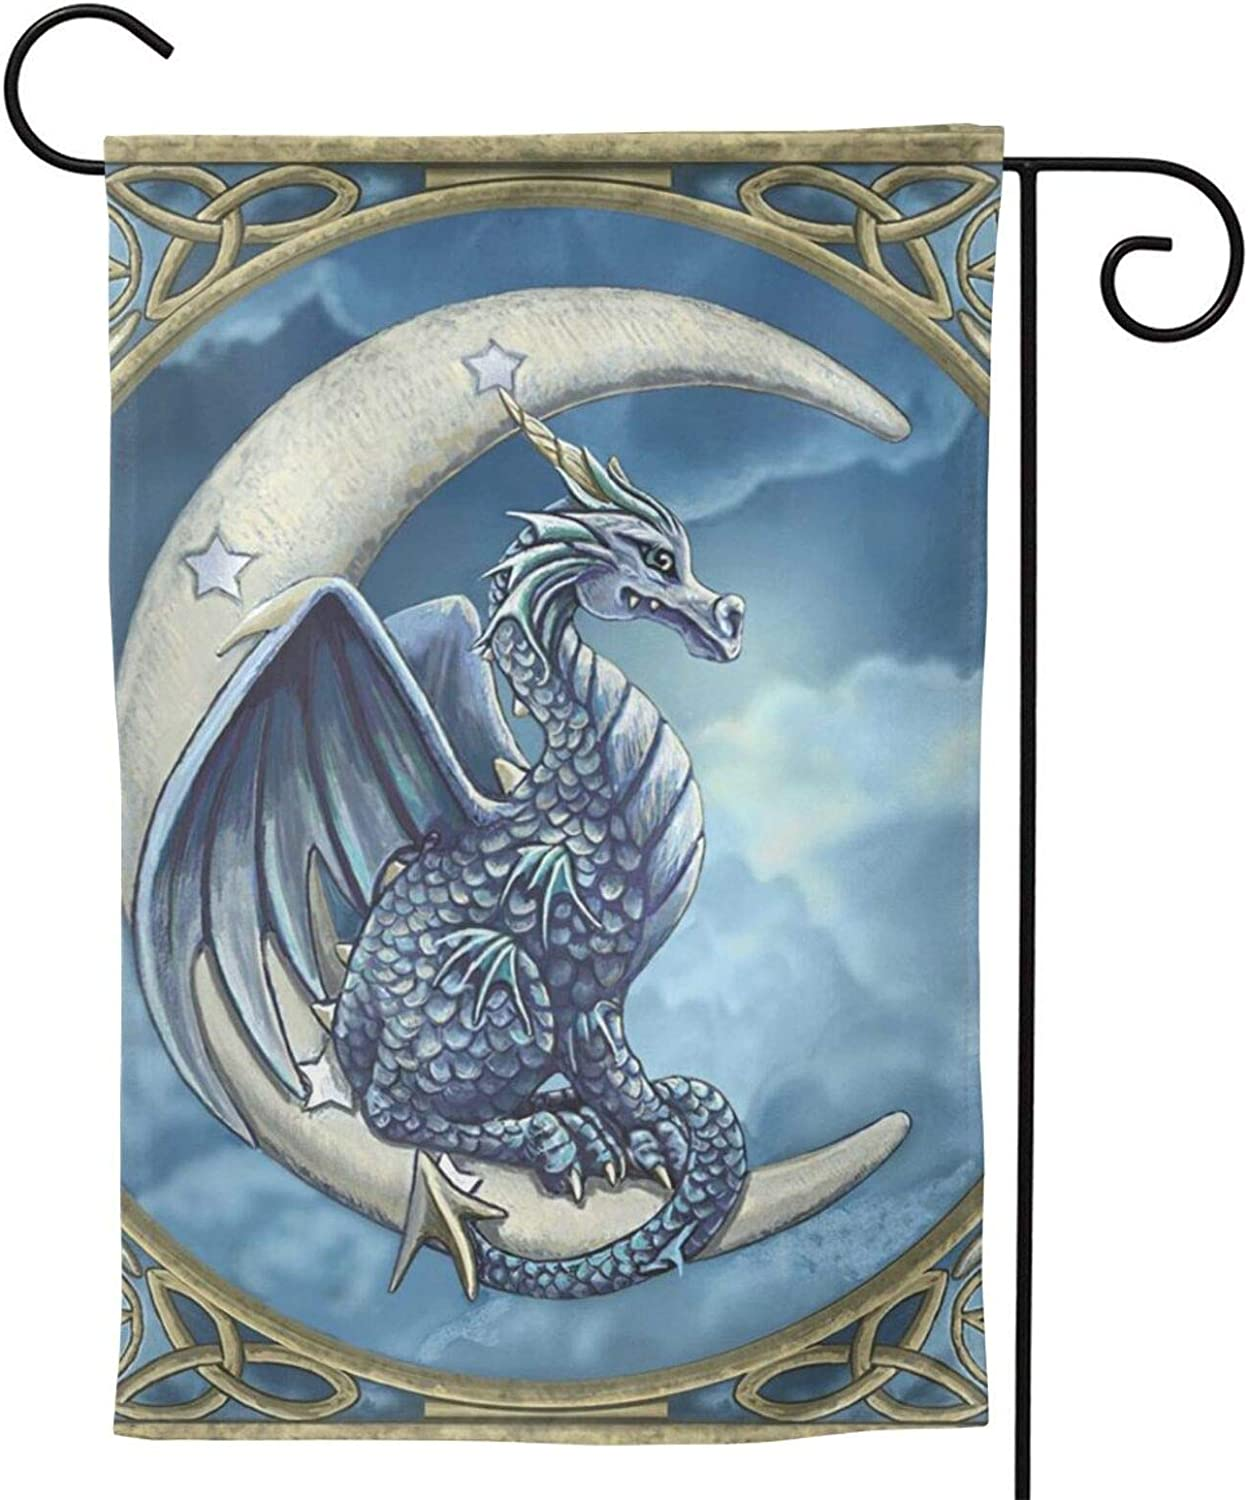 MINIOZE Wicca Wiccan Dragon Moon Magic Party Themed Flag Welcome Outdoor Outside Decorations Ornament Picks Garden Yard Decor Double Sided 12.5X 18 Flag